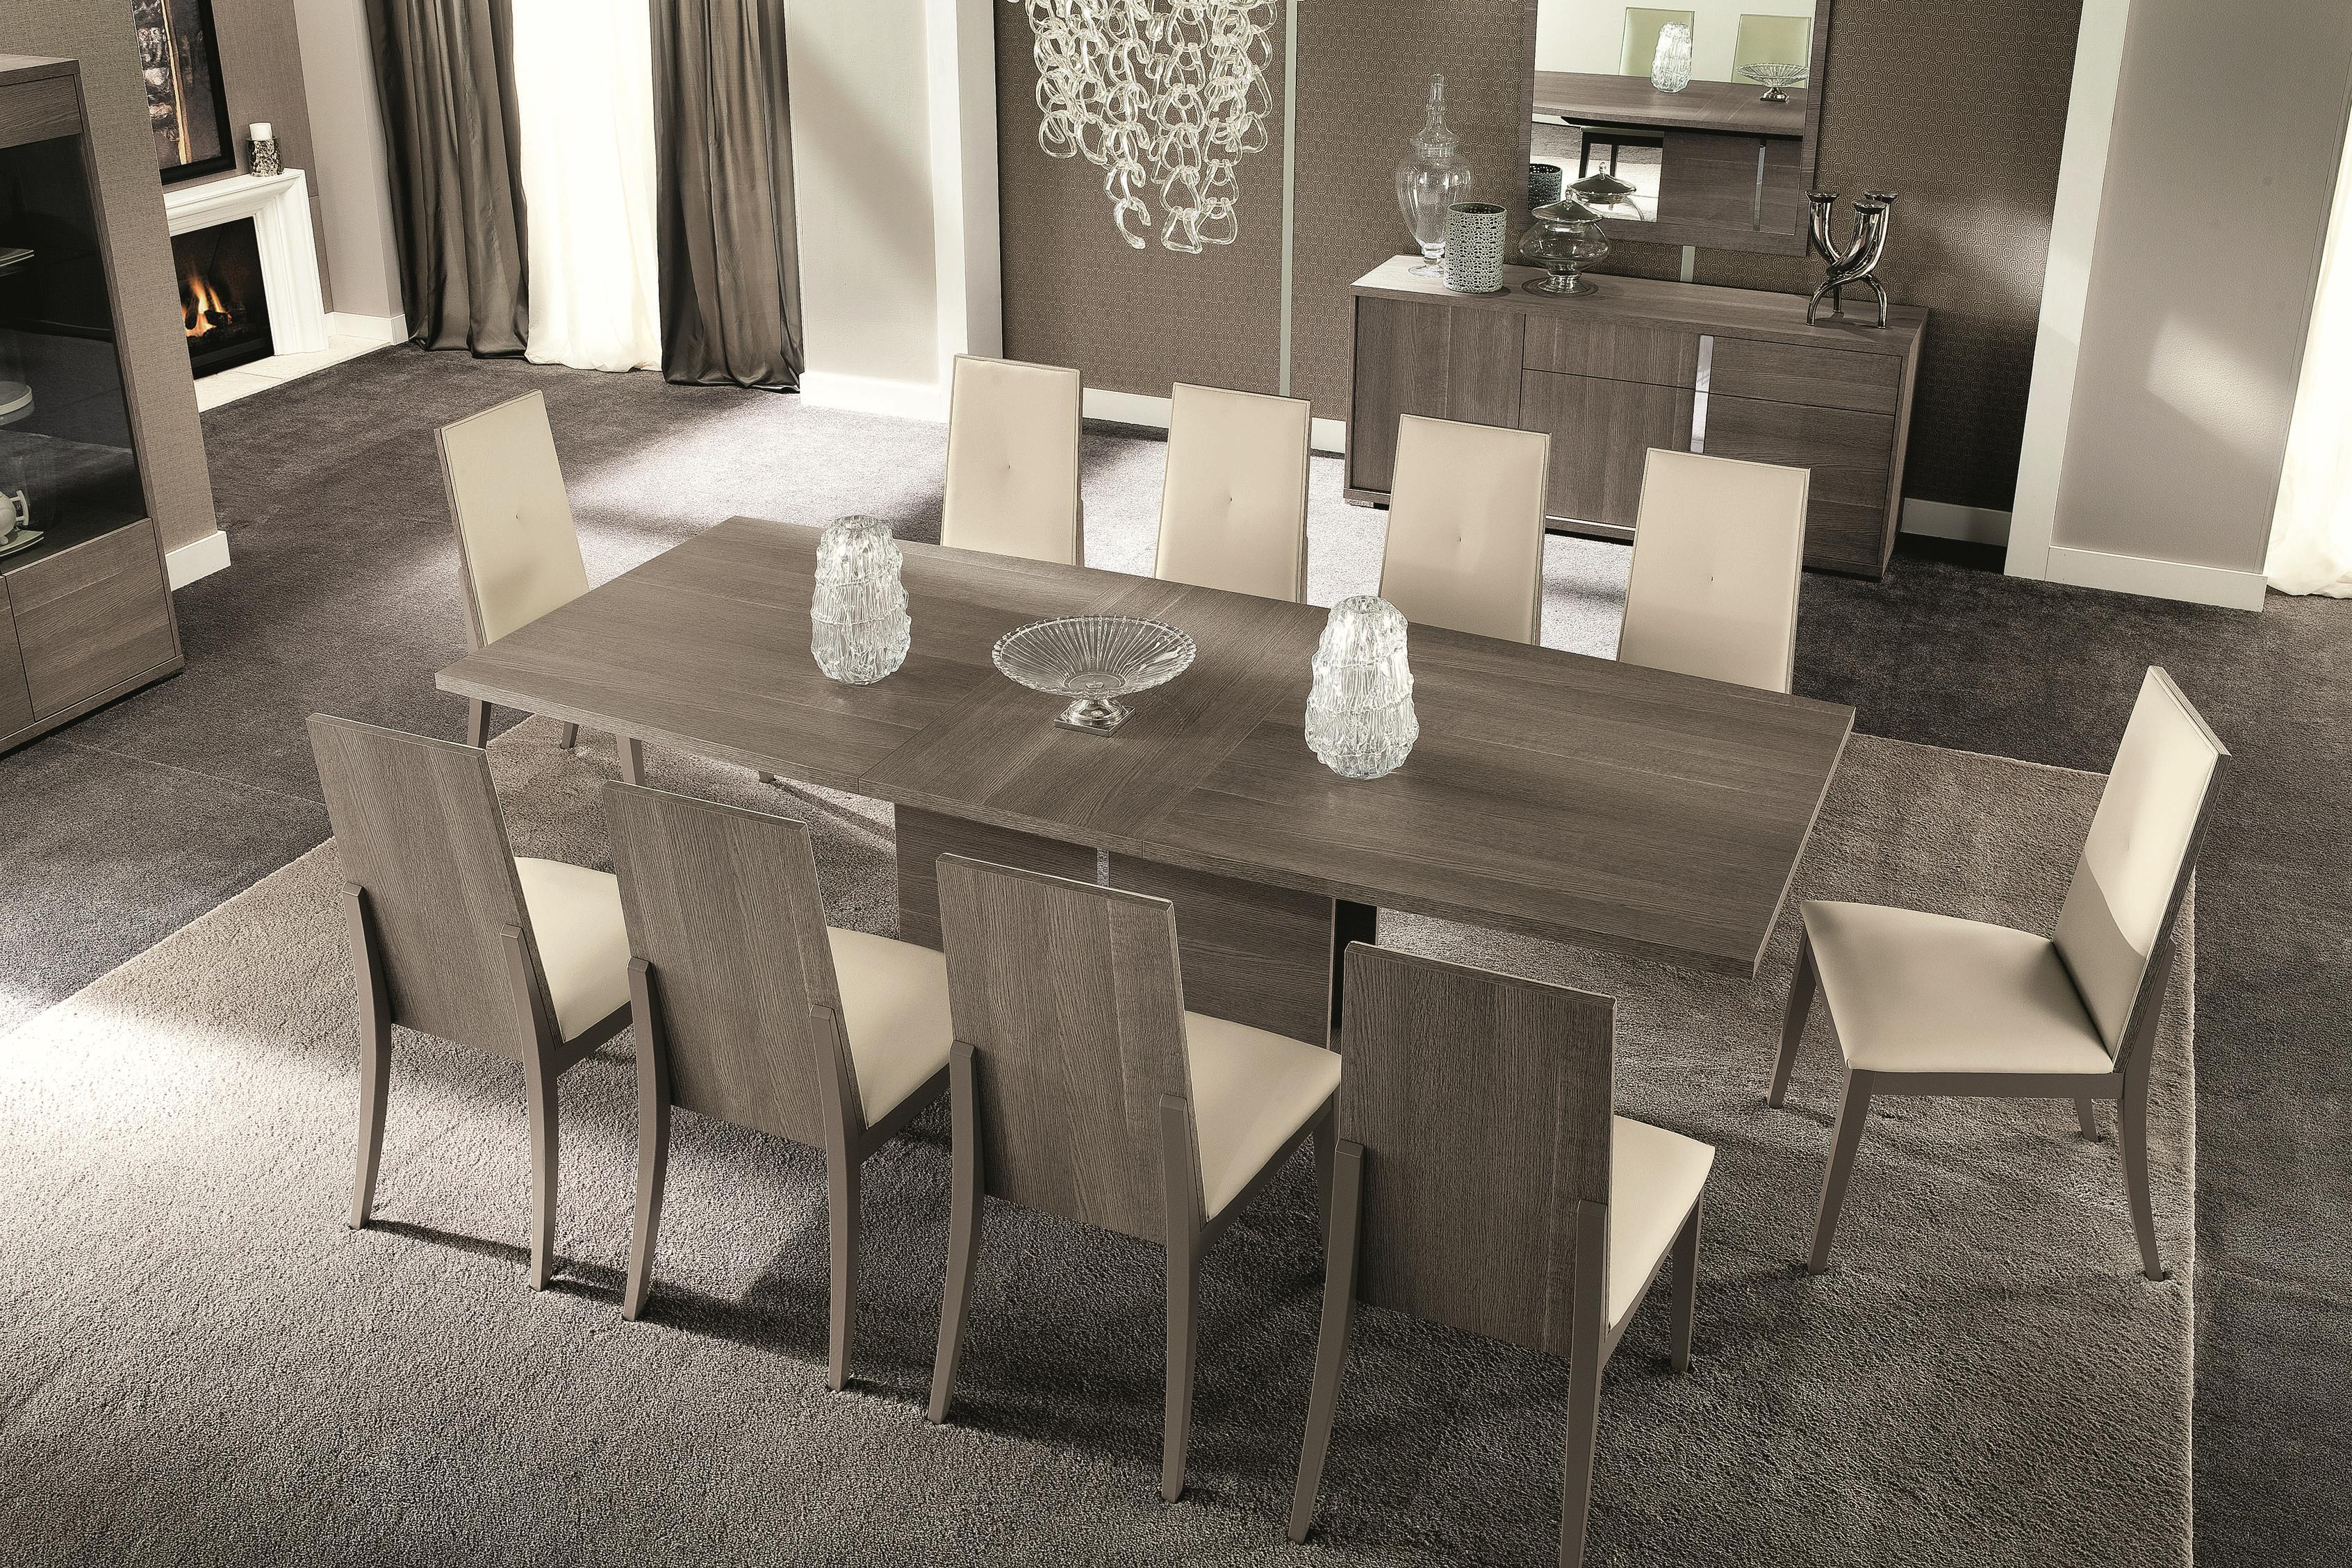 Tivoli Kjti By Alf Italia Corner Furniture Alf